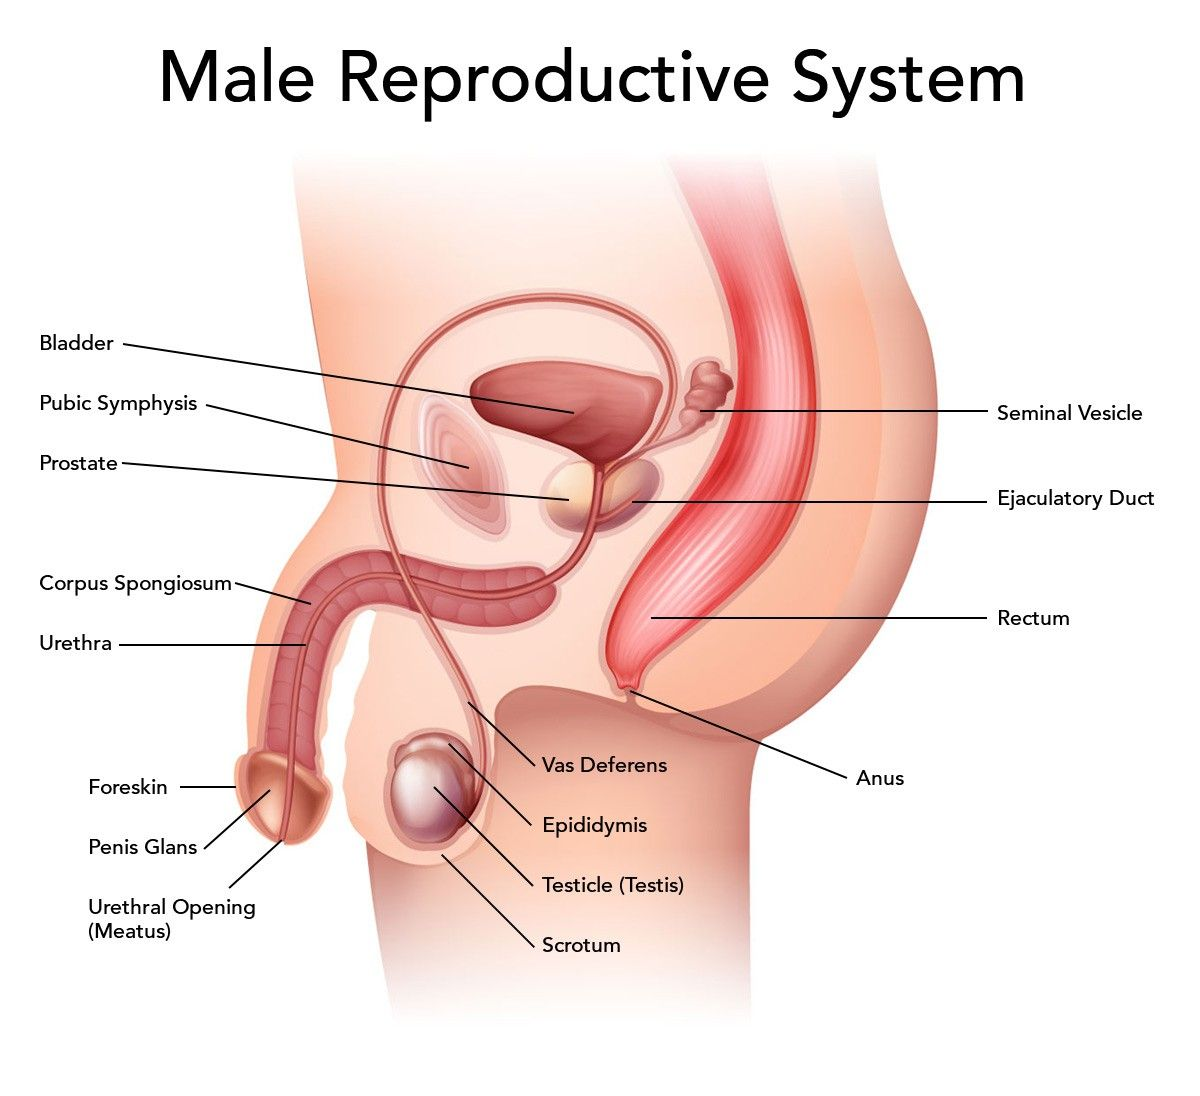 anatomical diagram of human body luxury female reproductive system diseases diseases in the male reproductive system female [ 1200 x 1096 Pixel ]